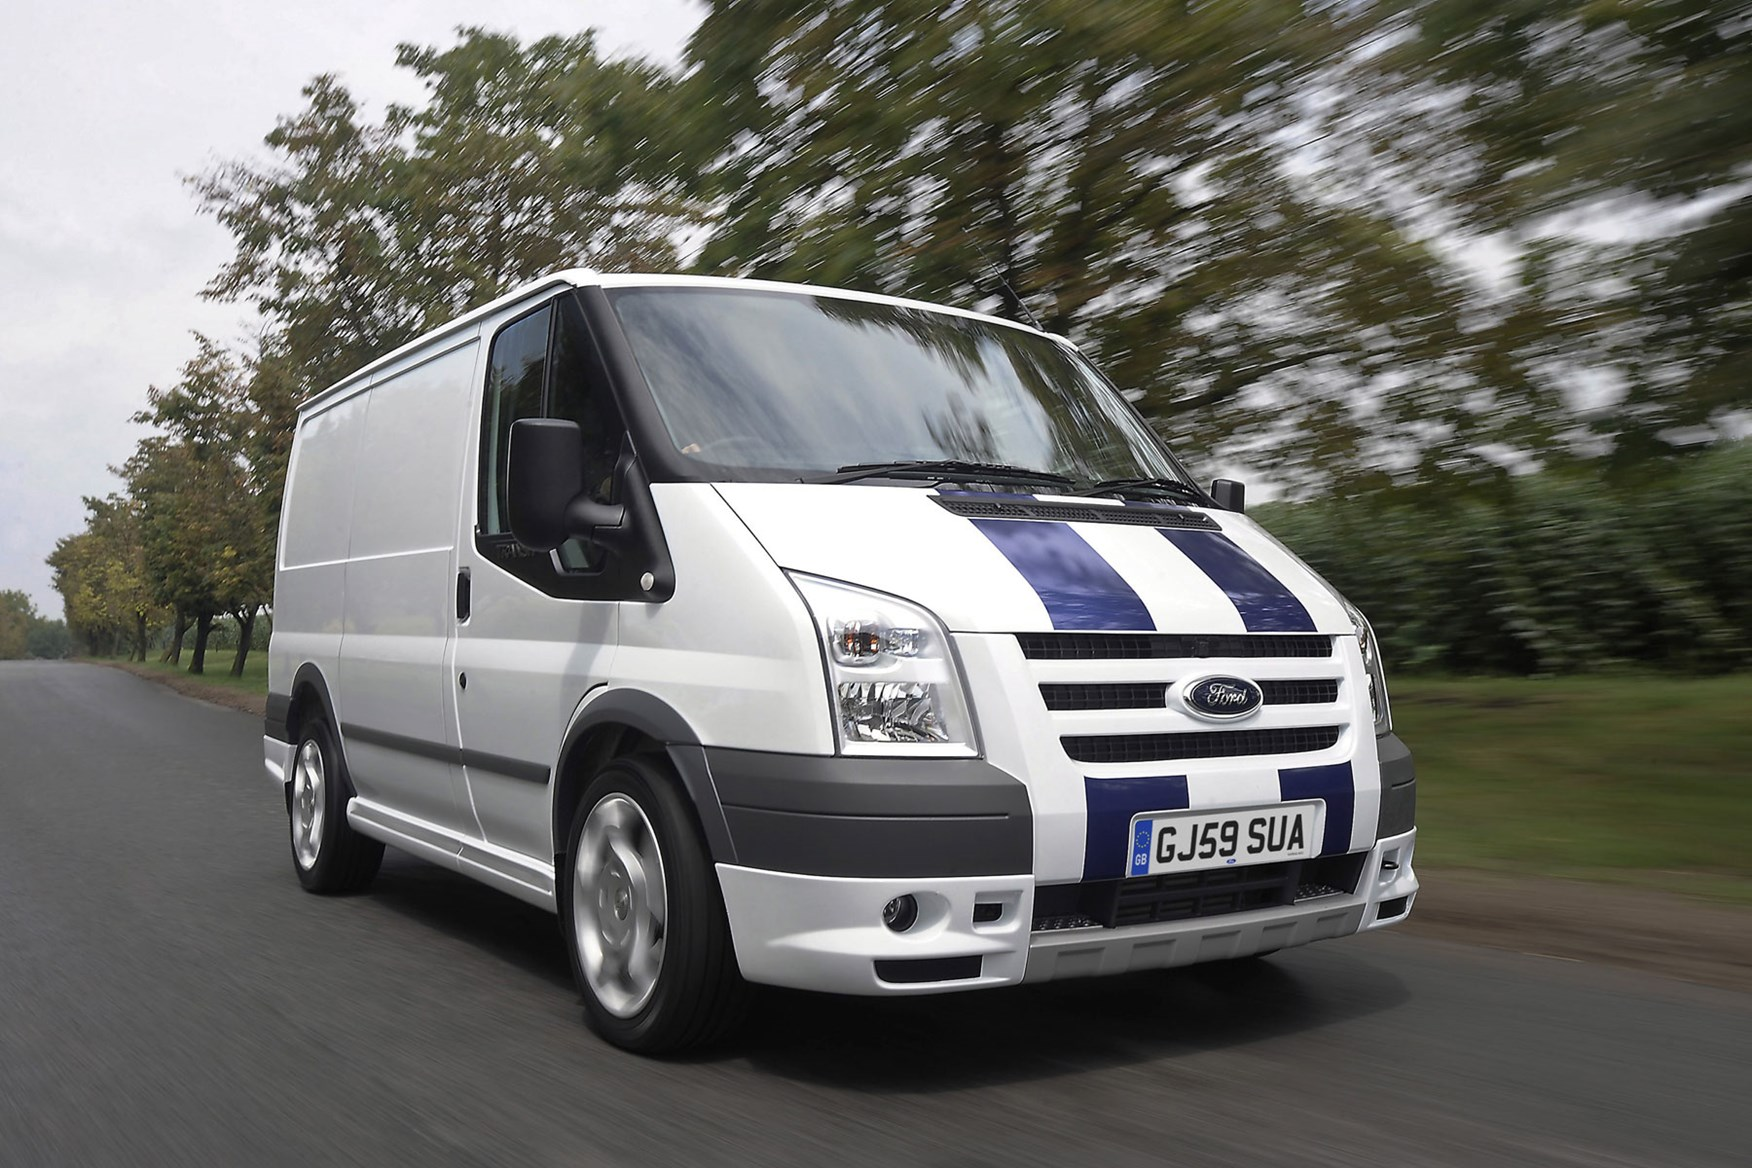 387ce40e91 Ford Transit (2006-2014) review on Parkers Vans ...